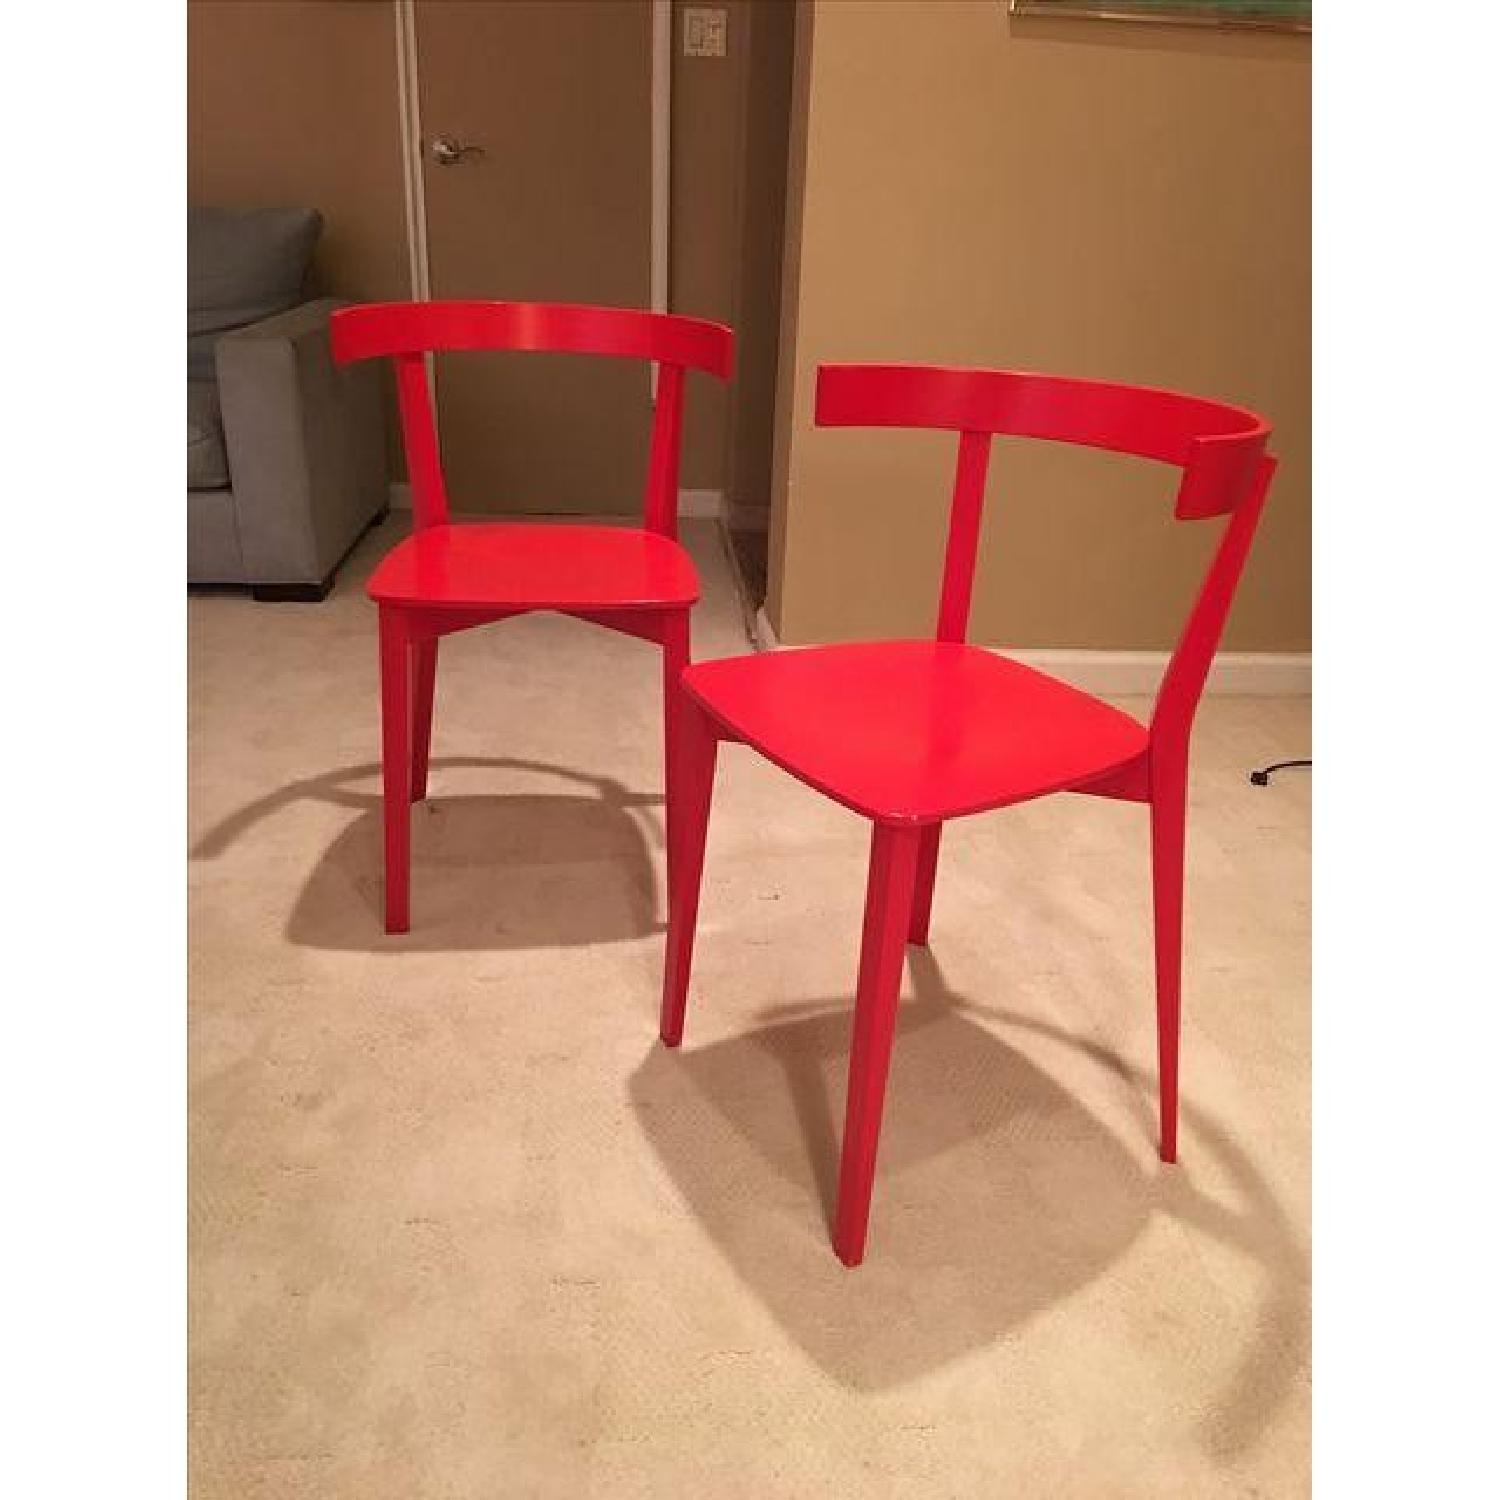 High Gloss Red Lacquer Chairs - image-2